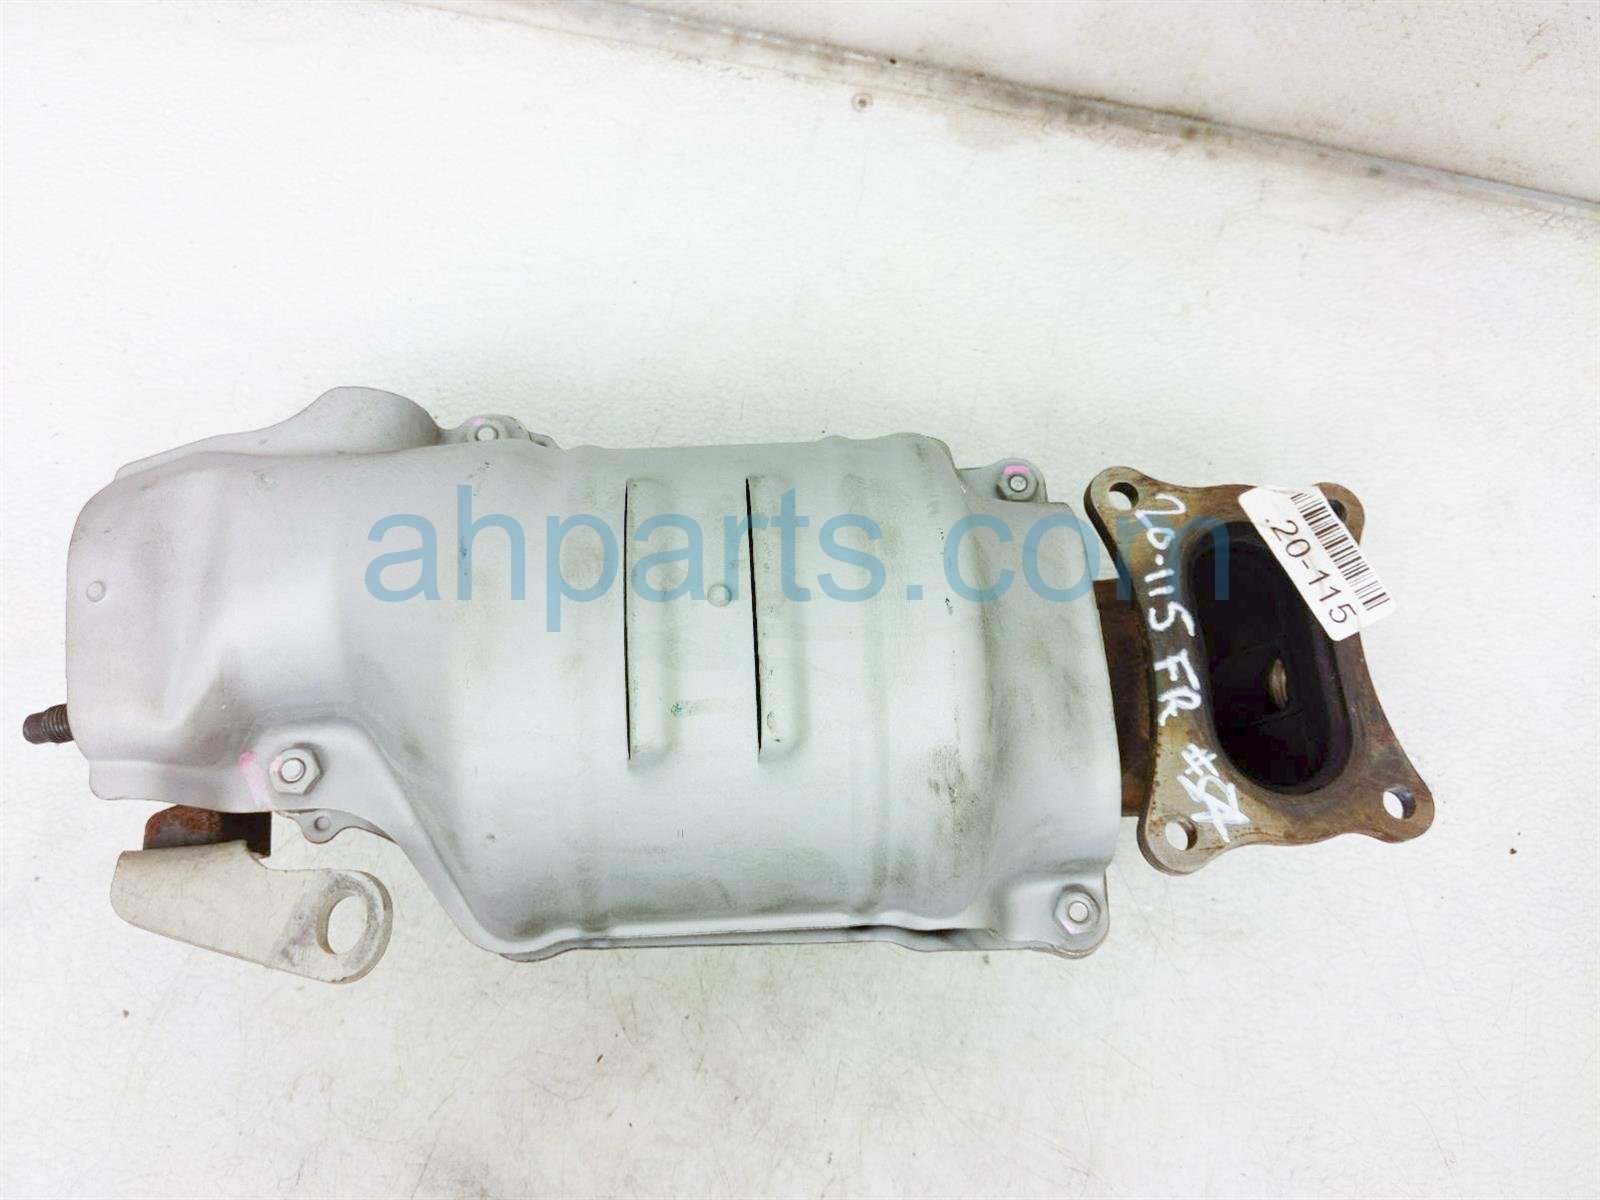 2019 Honda Passport Front Exhaust Manifold 18180 RLV A00 Replacement